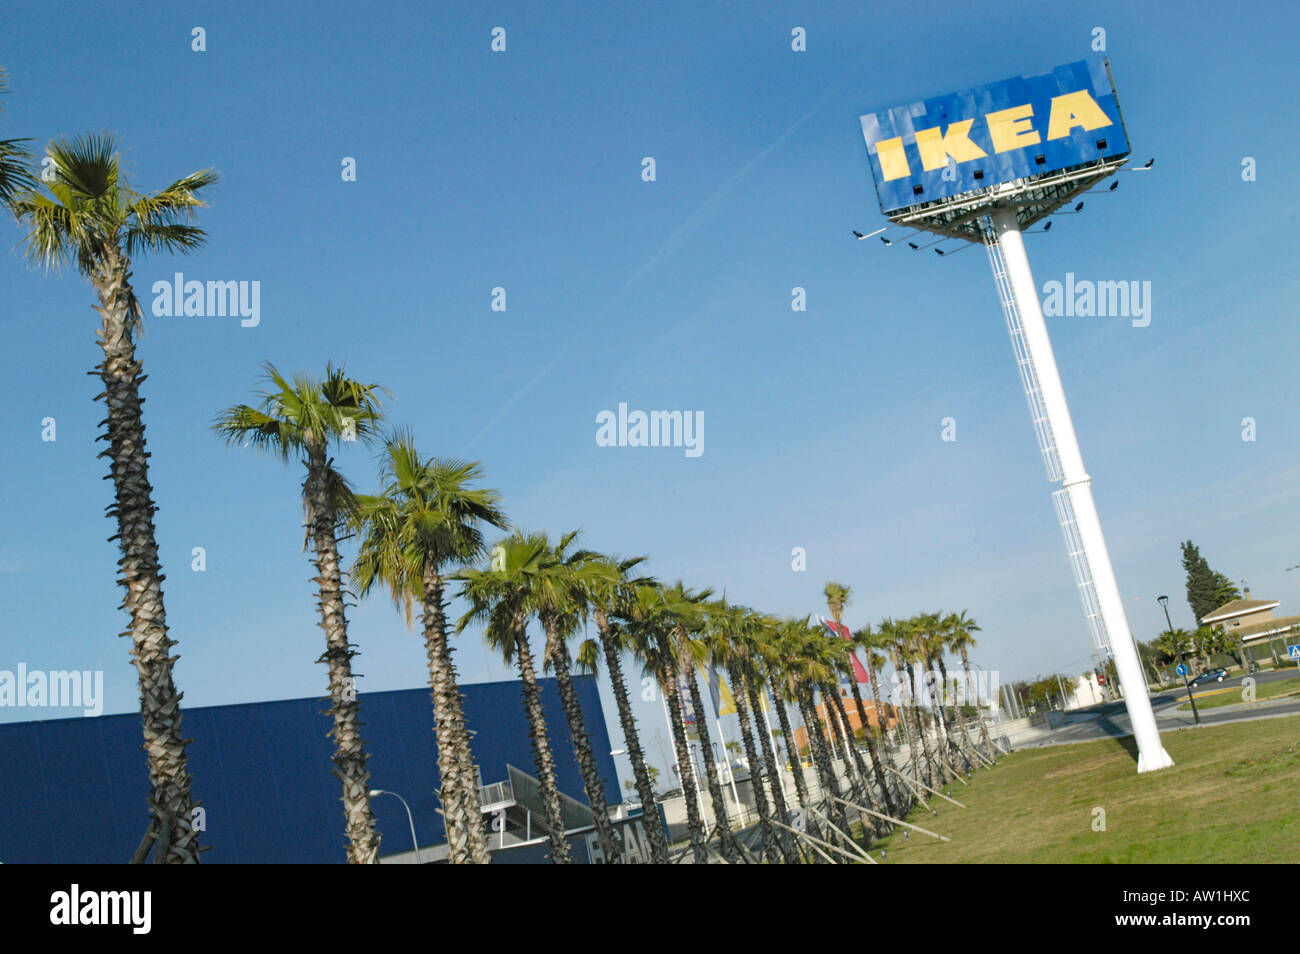 Ikea Palm Tree Ikea Spain Sevillia Andalusia Logo With Palmtrees Stock Photo